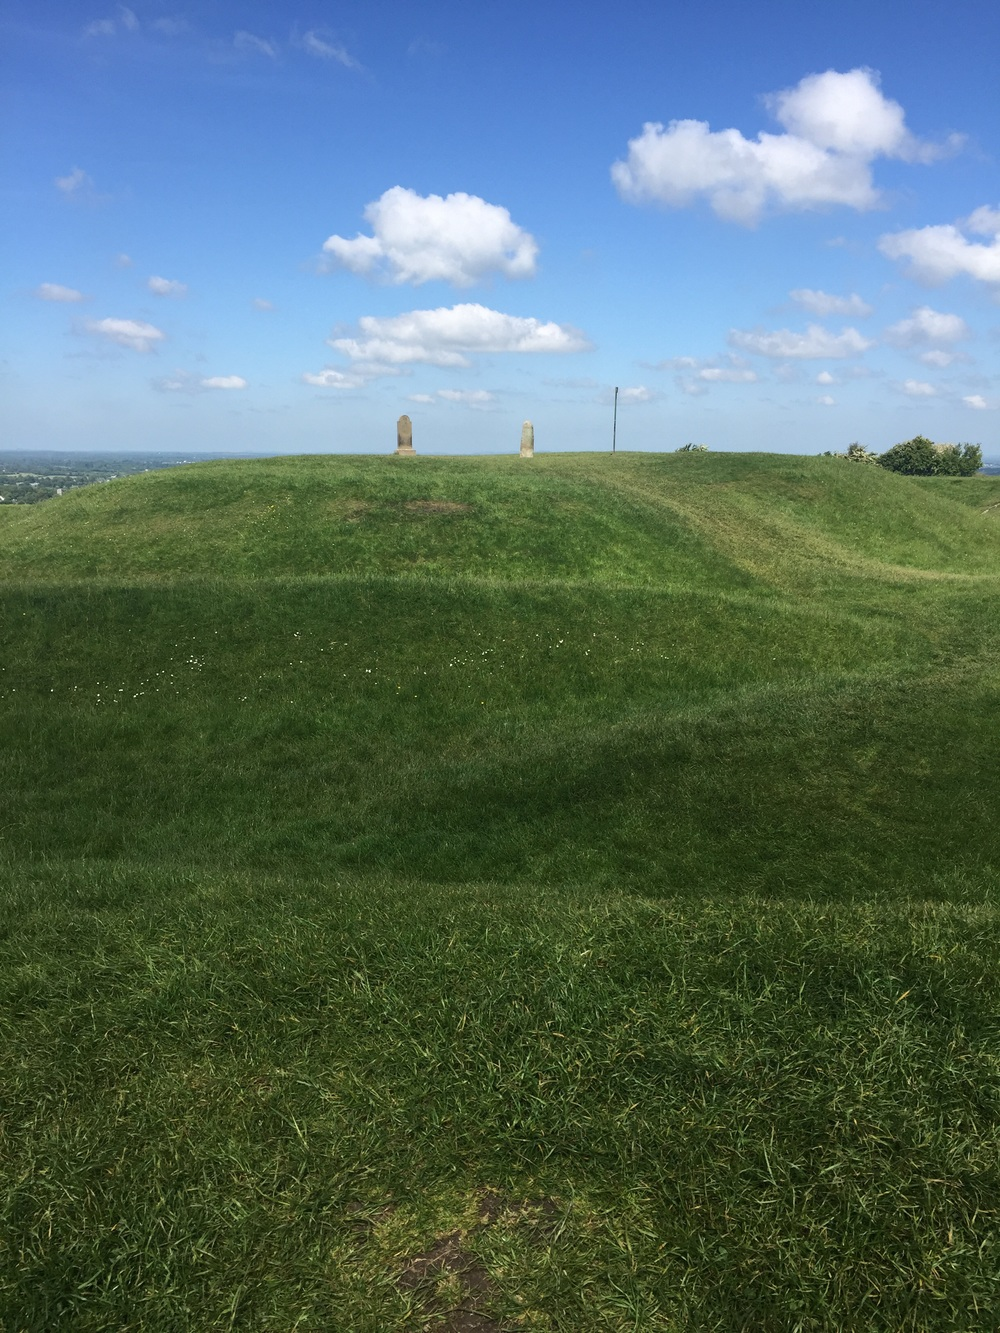 All of the humps in the grass were once tunnels and caverns.